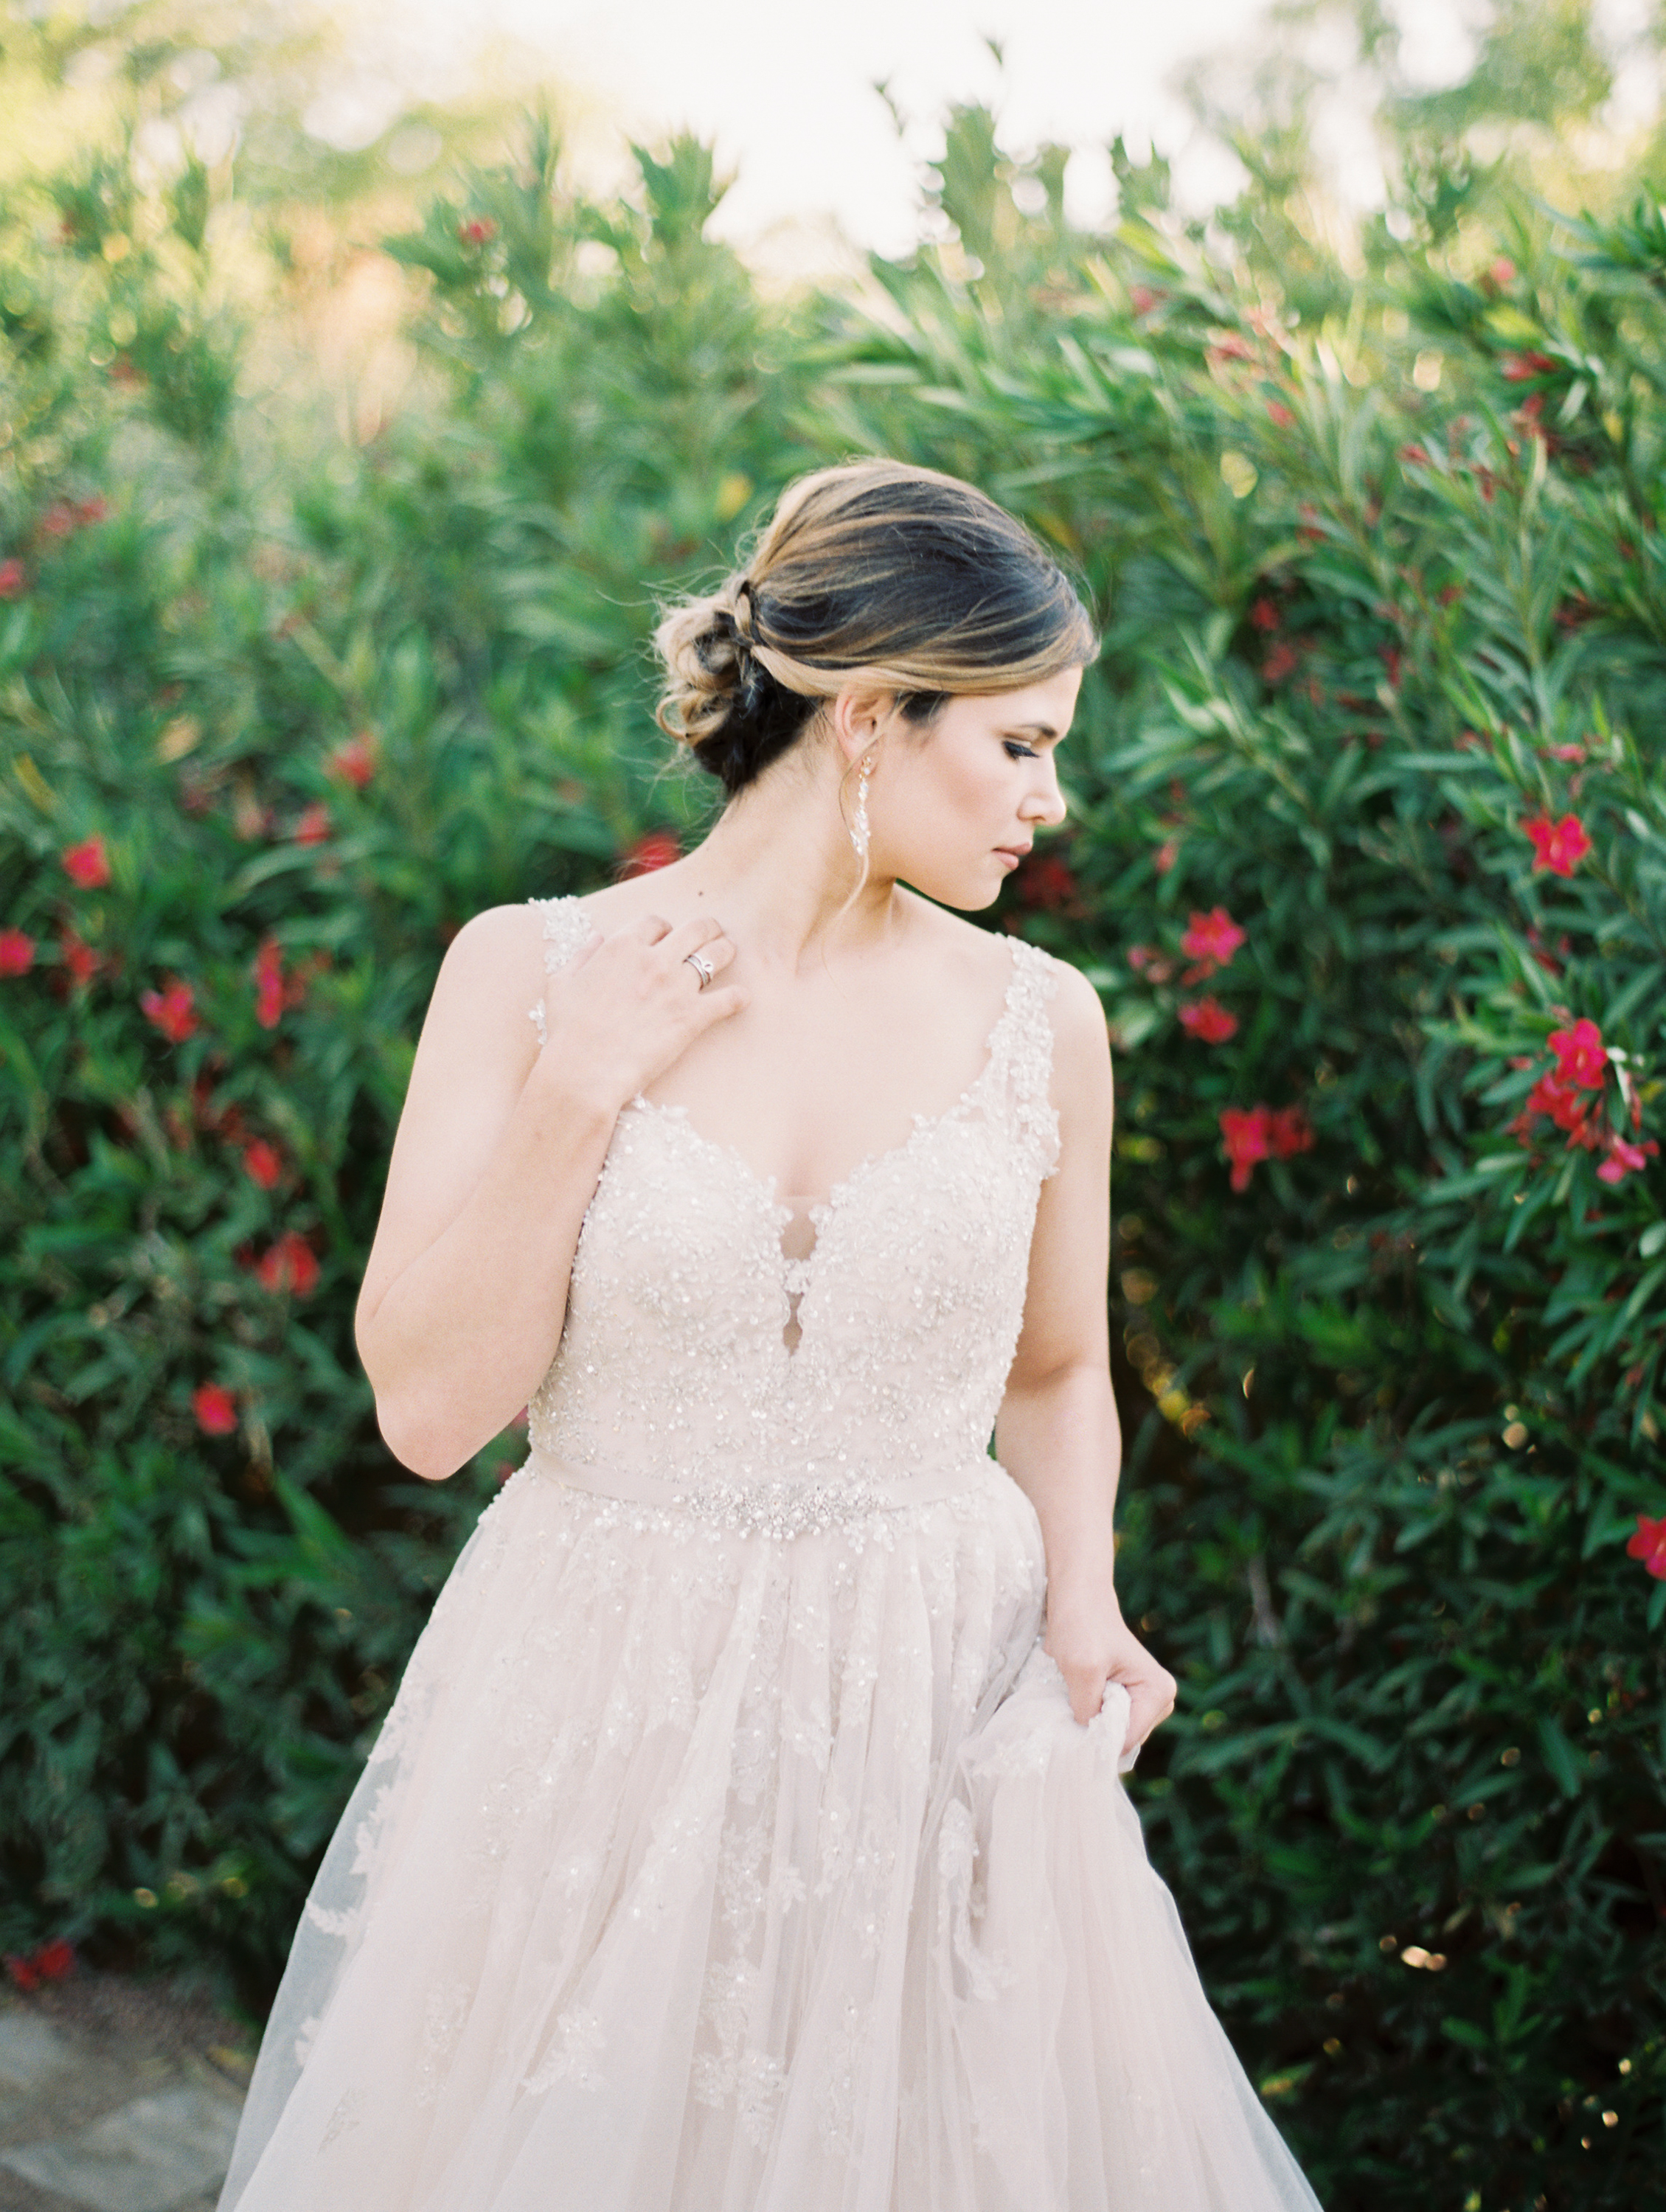 Summer Garden Bridal Session on Film | Summer Bridal Bouquet | Summer Wedding Inspiration | Britni Dean Photography - Texas Wedding Photographer